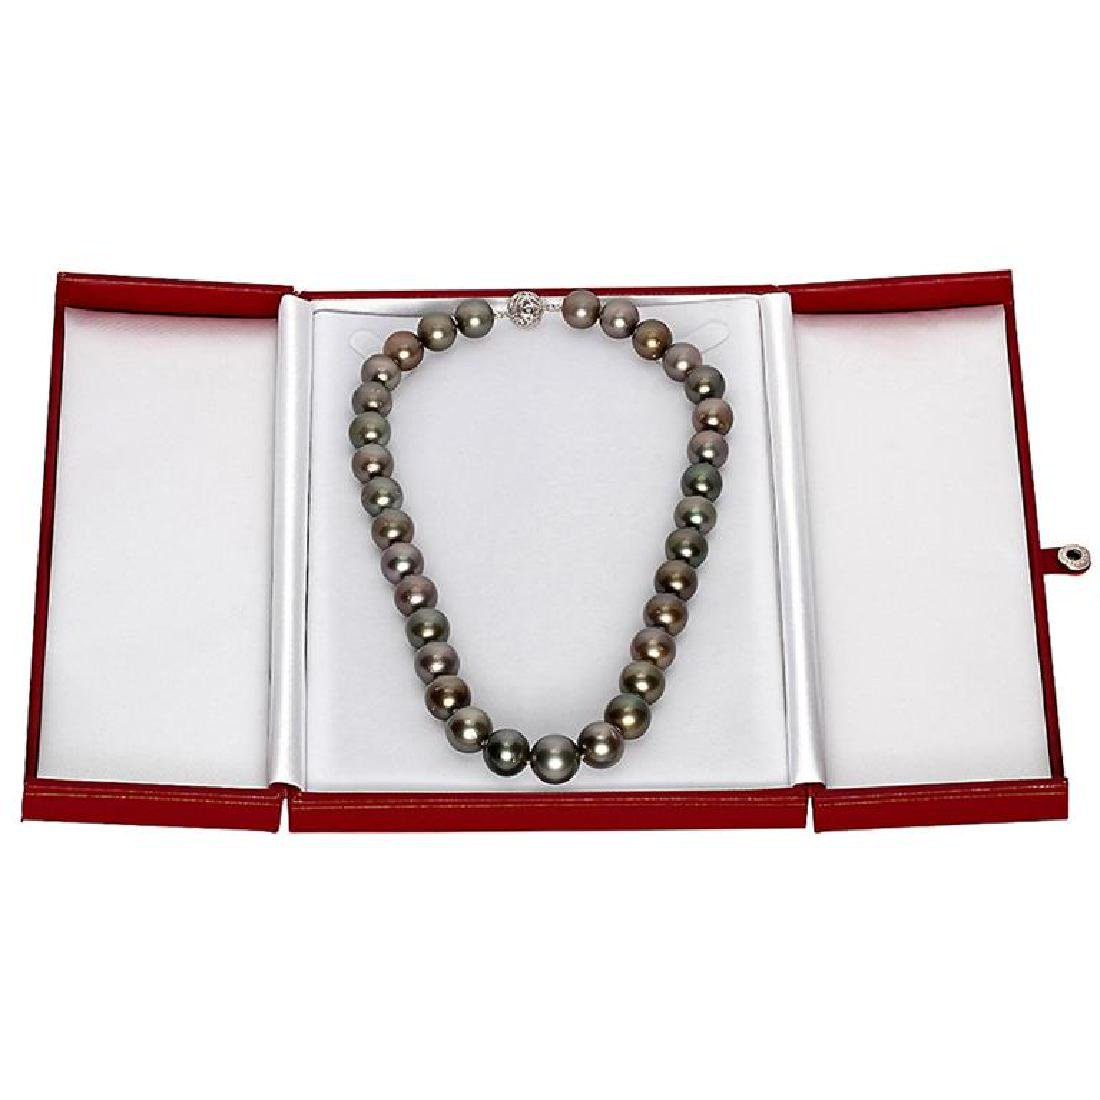 12-14.5mm Natural Black Pearl Necklace - 3